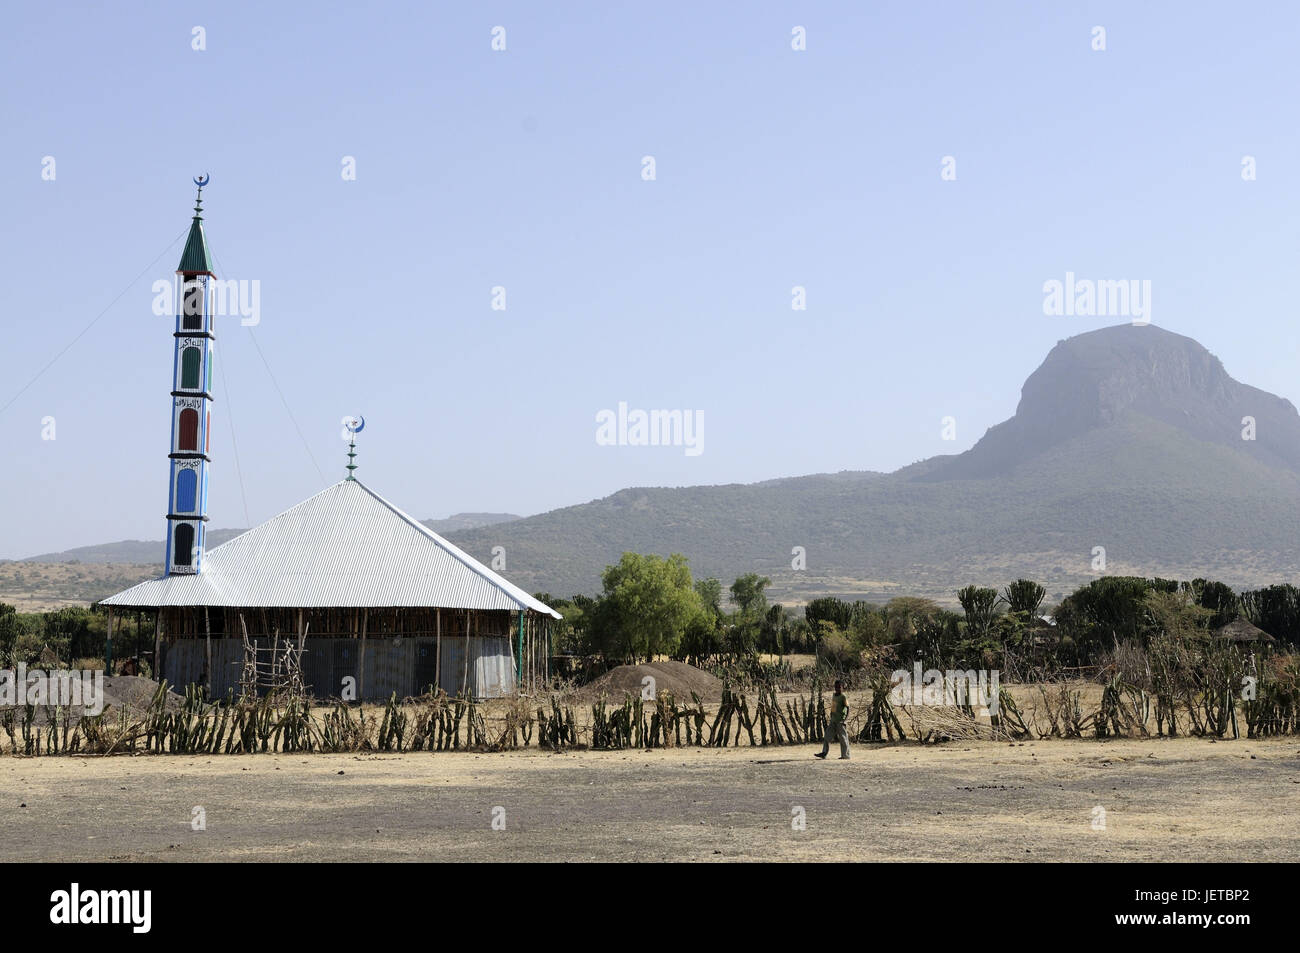 Mosque, Ogaden, Ethiopia Stock Photo: 146824218 - Alamy